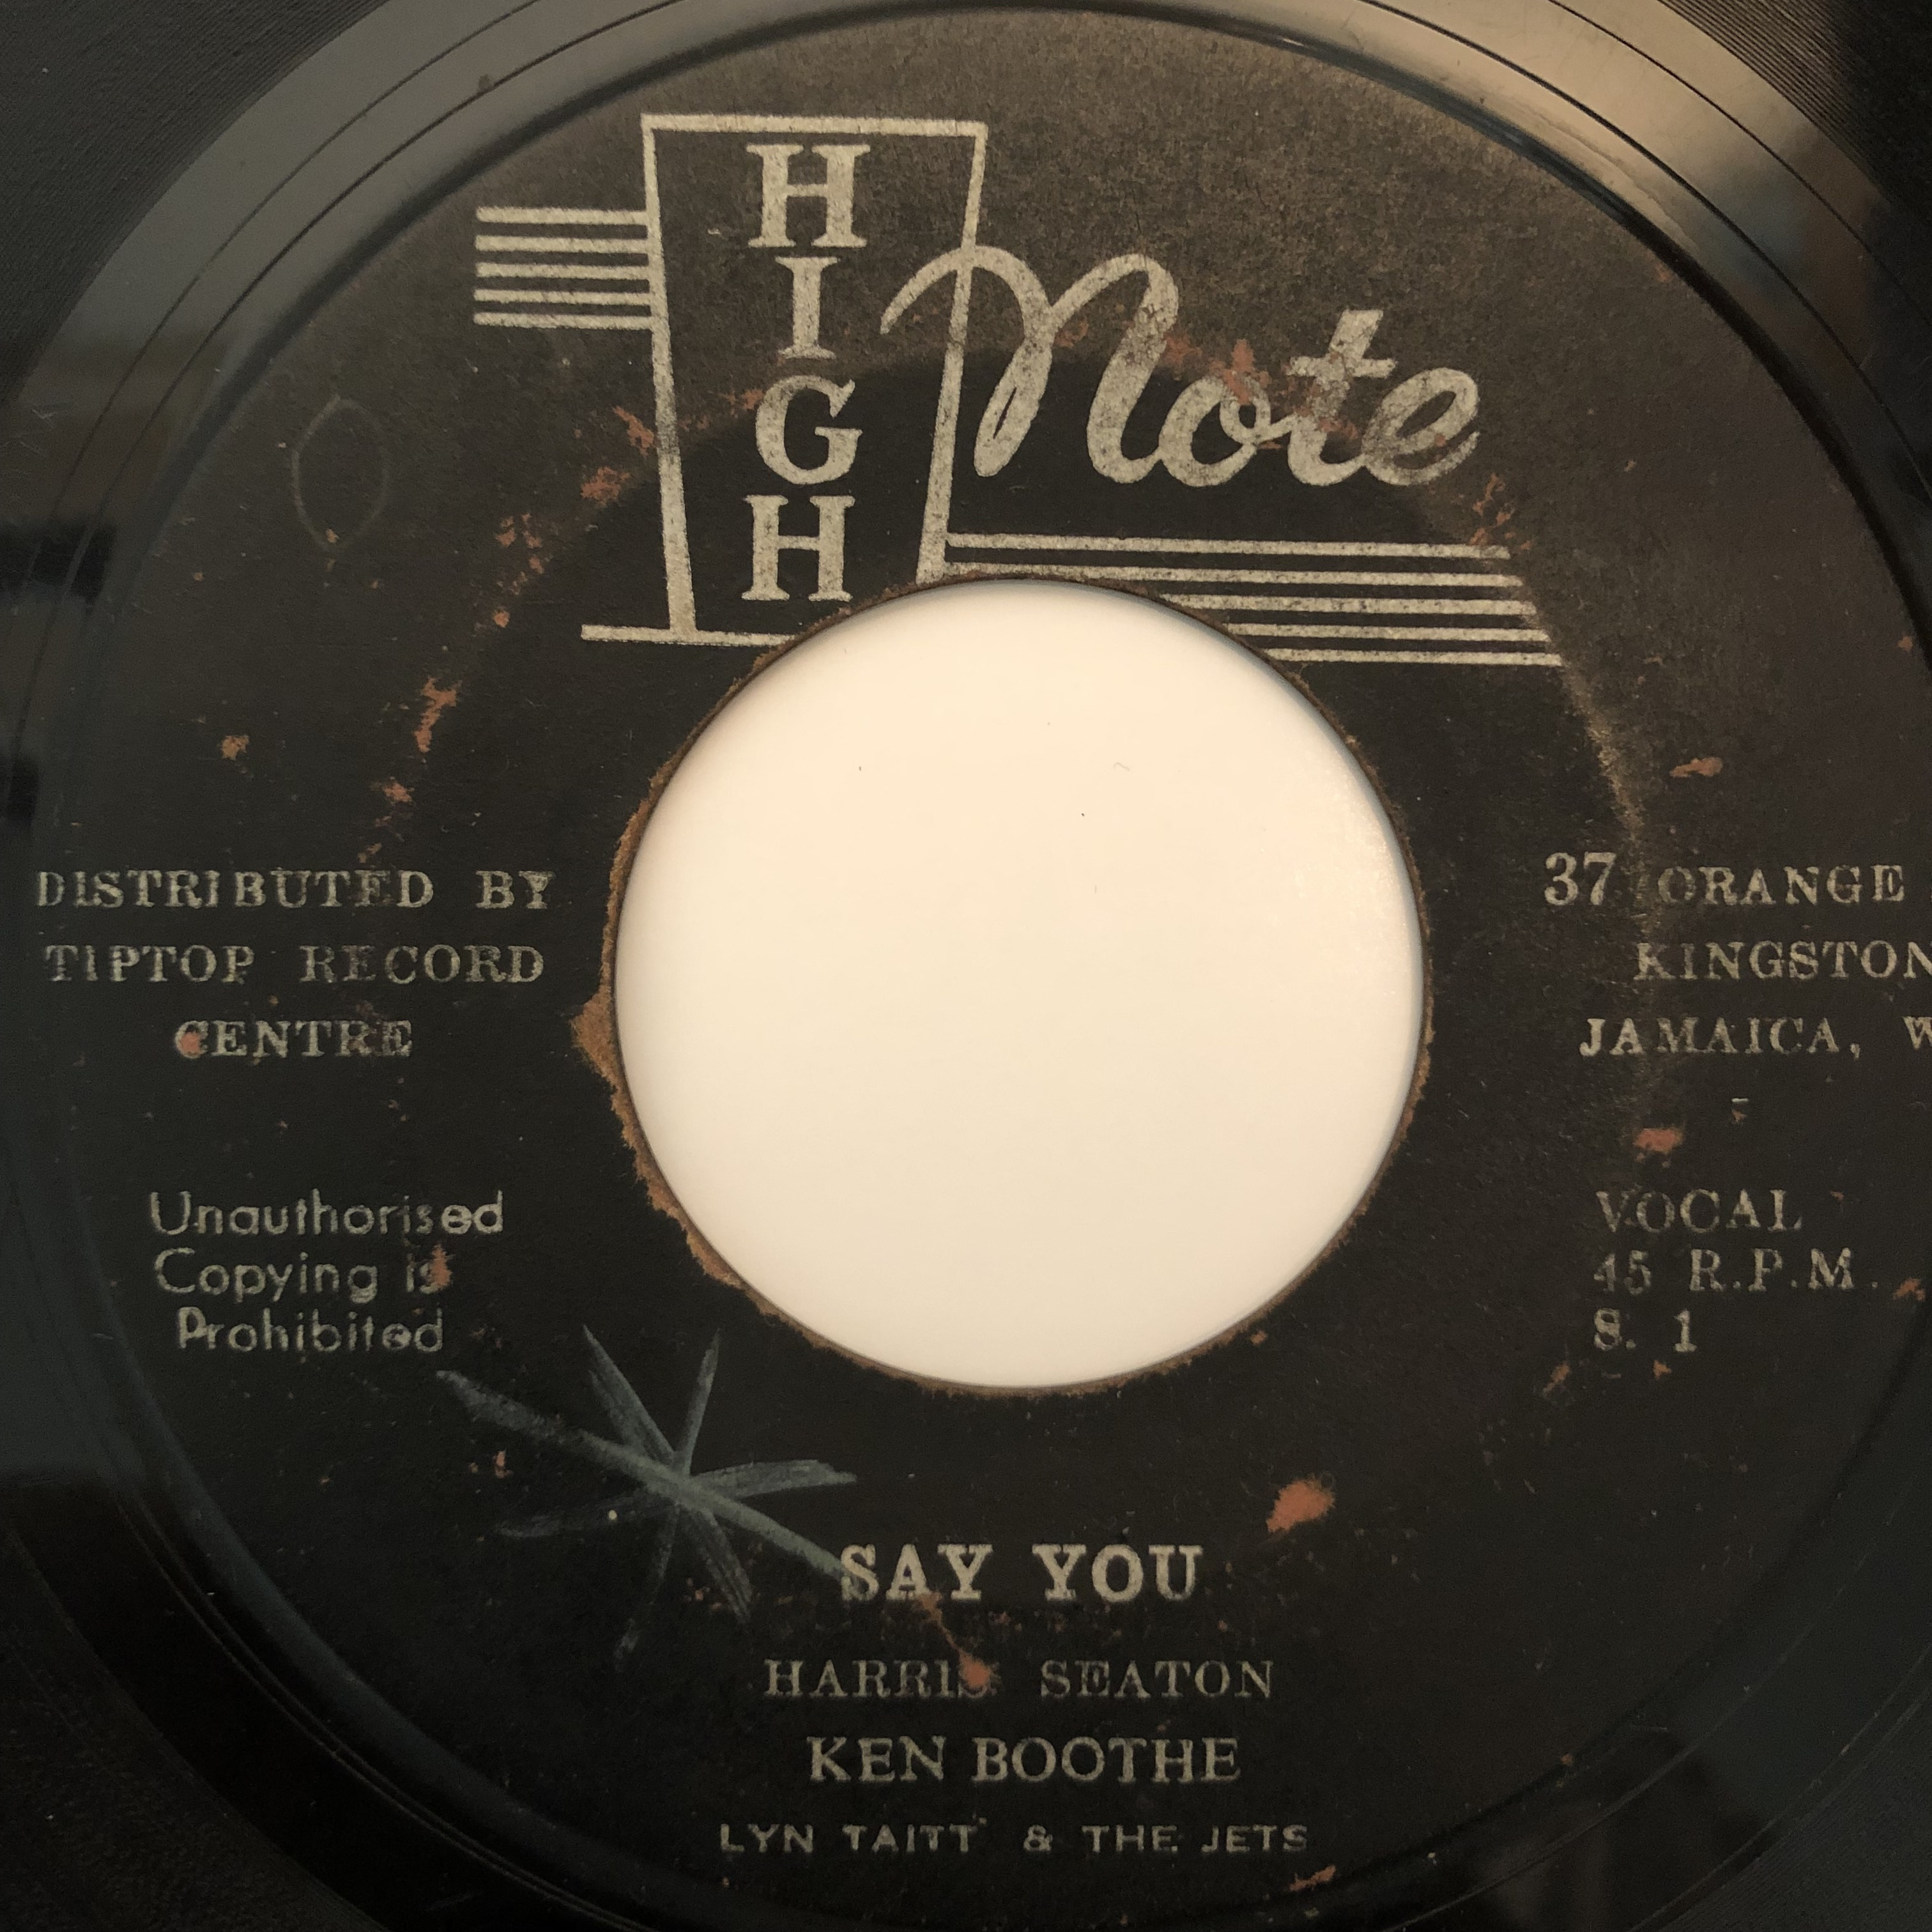 Ken Boothe, Lyn Taitt & The Jets - Say You【7-20287】